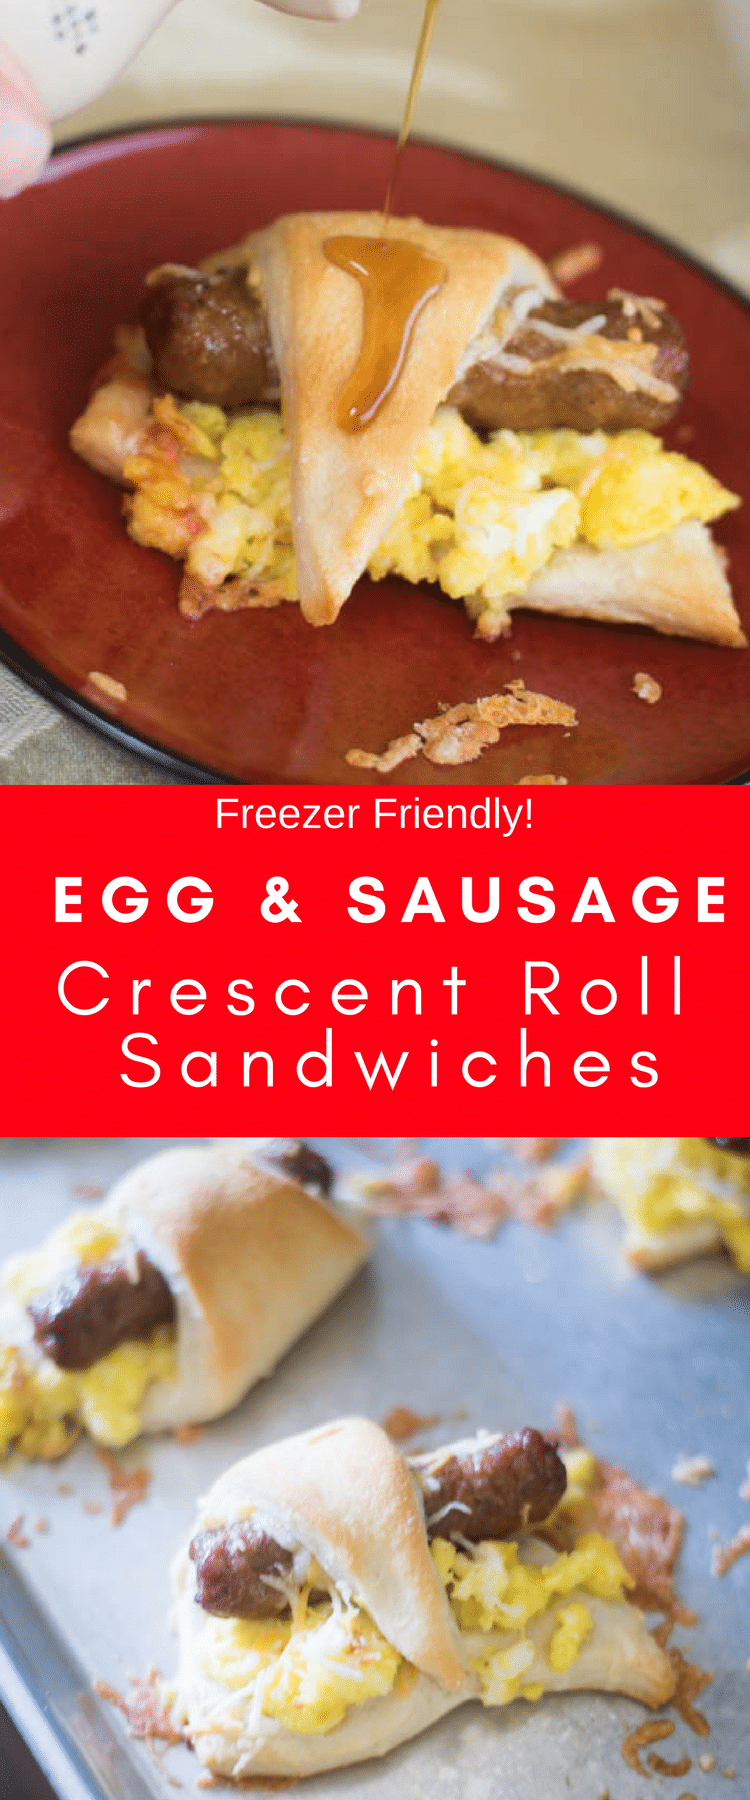 Sausage Breakfast Sandwich / Crescent Roll Recipes / Freezer Breakfast / Freezer Meals / Back to School / Breakfast / Easy Breakfast / #breakfast #sausage #backtoschool #easyrecipe